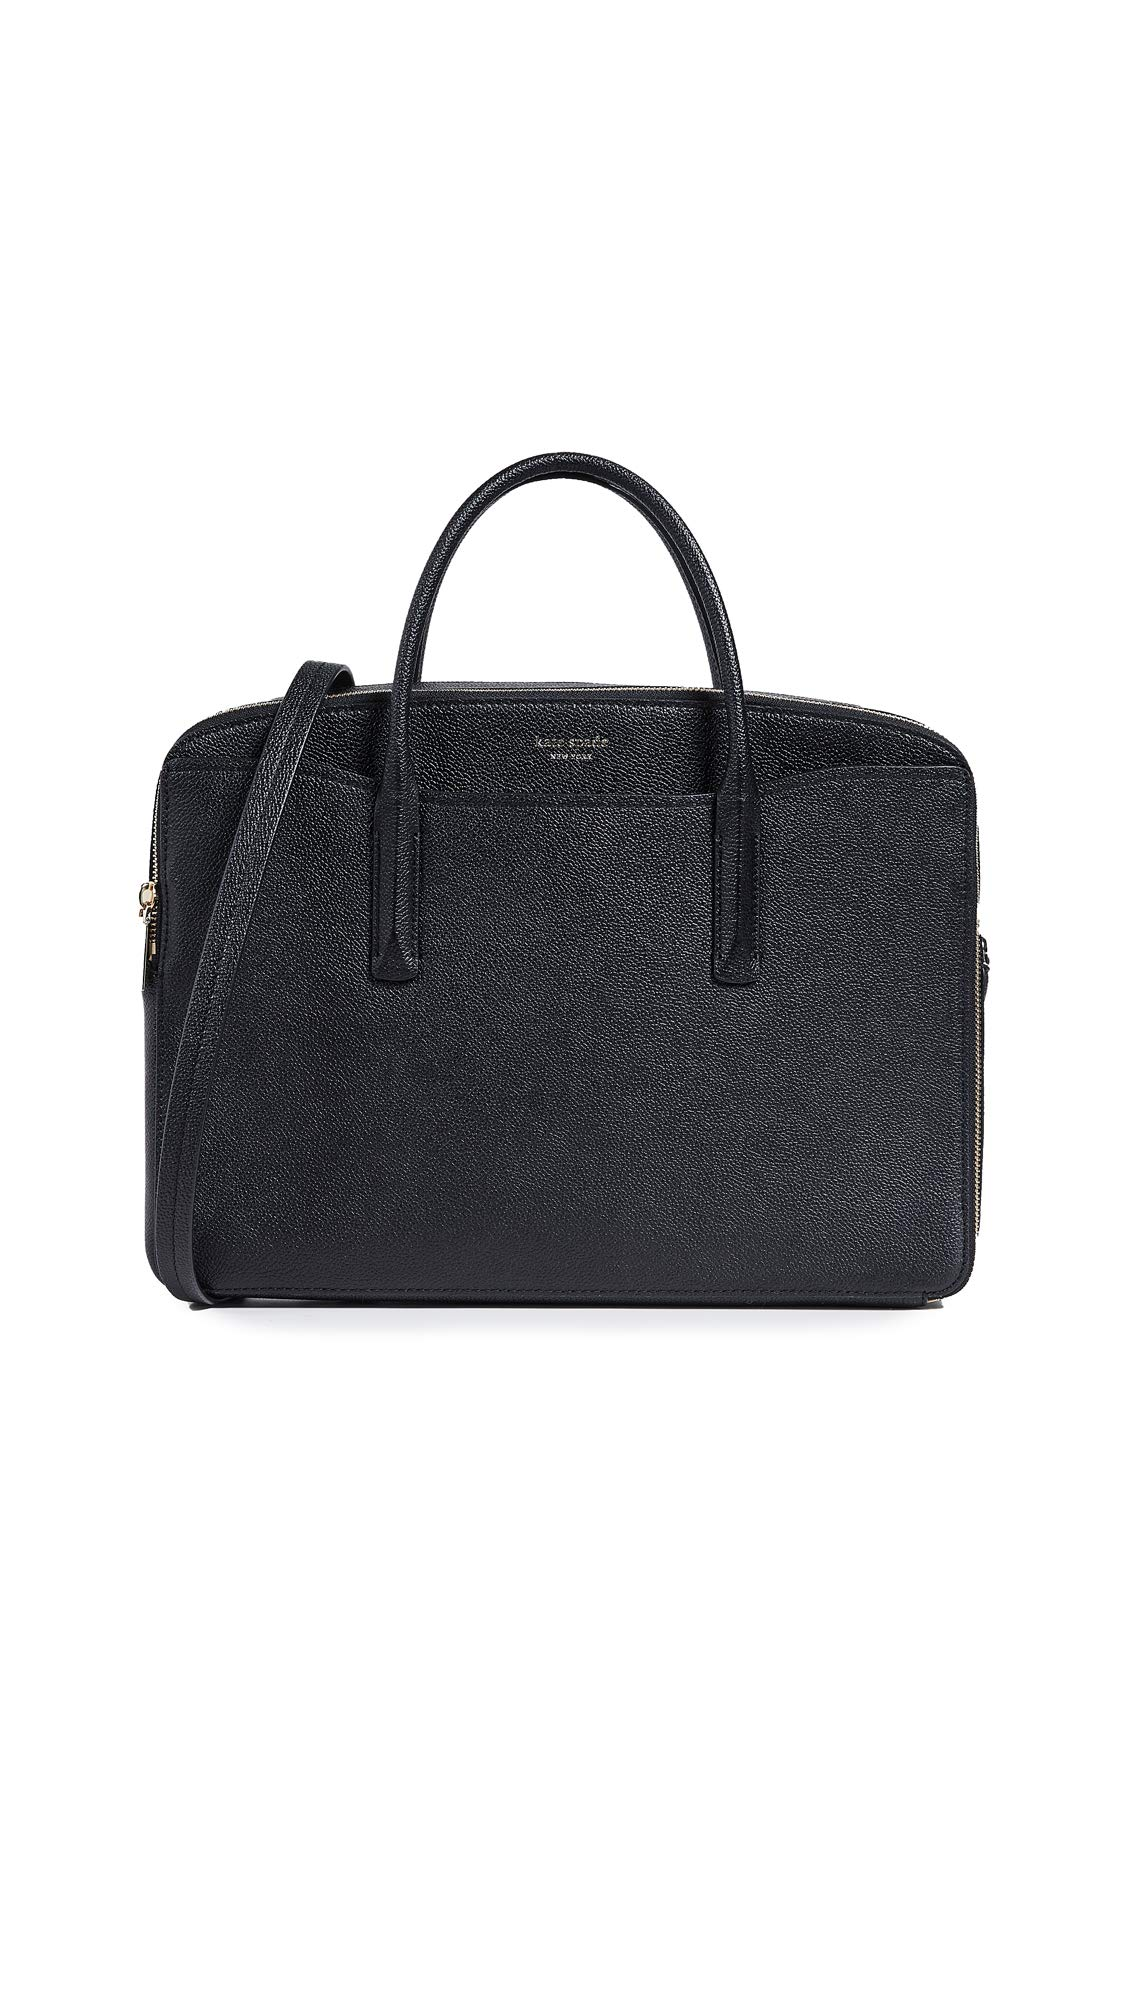 Kate Spade New York Margaux Double Zip Laptop Bag, Black, One Size